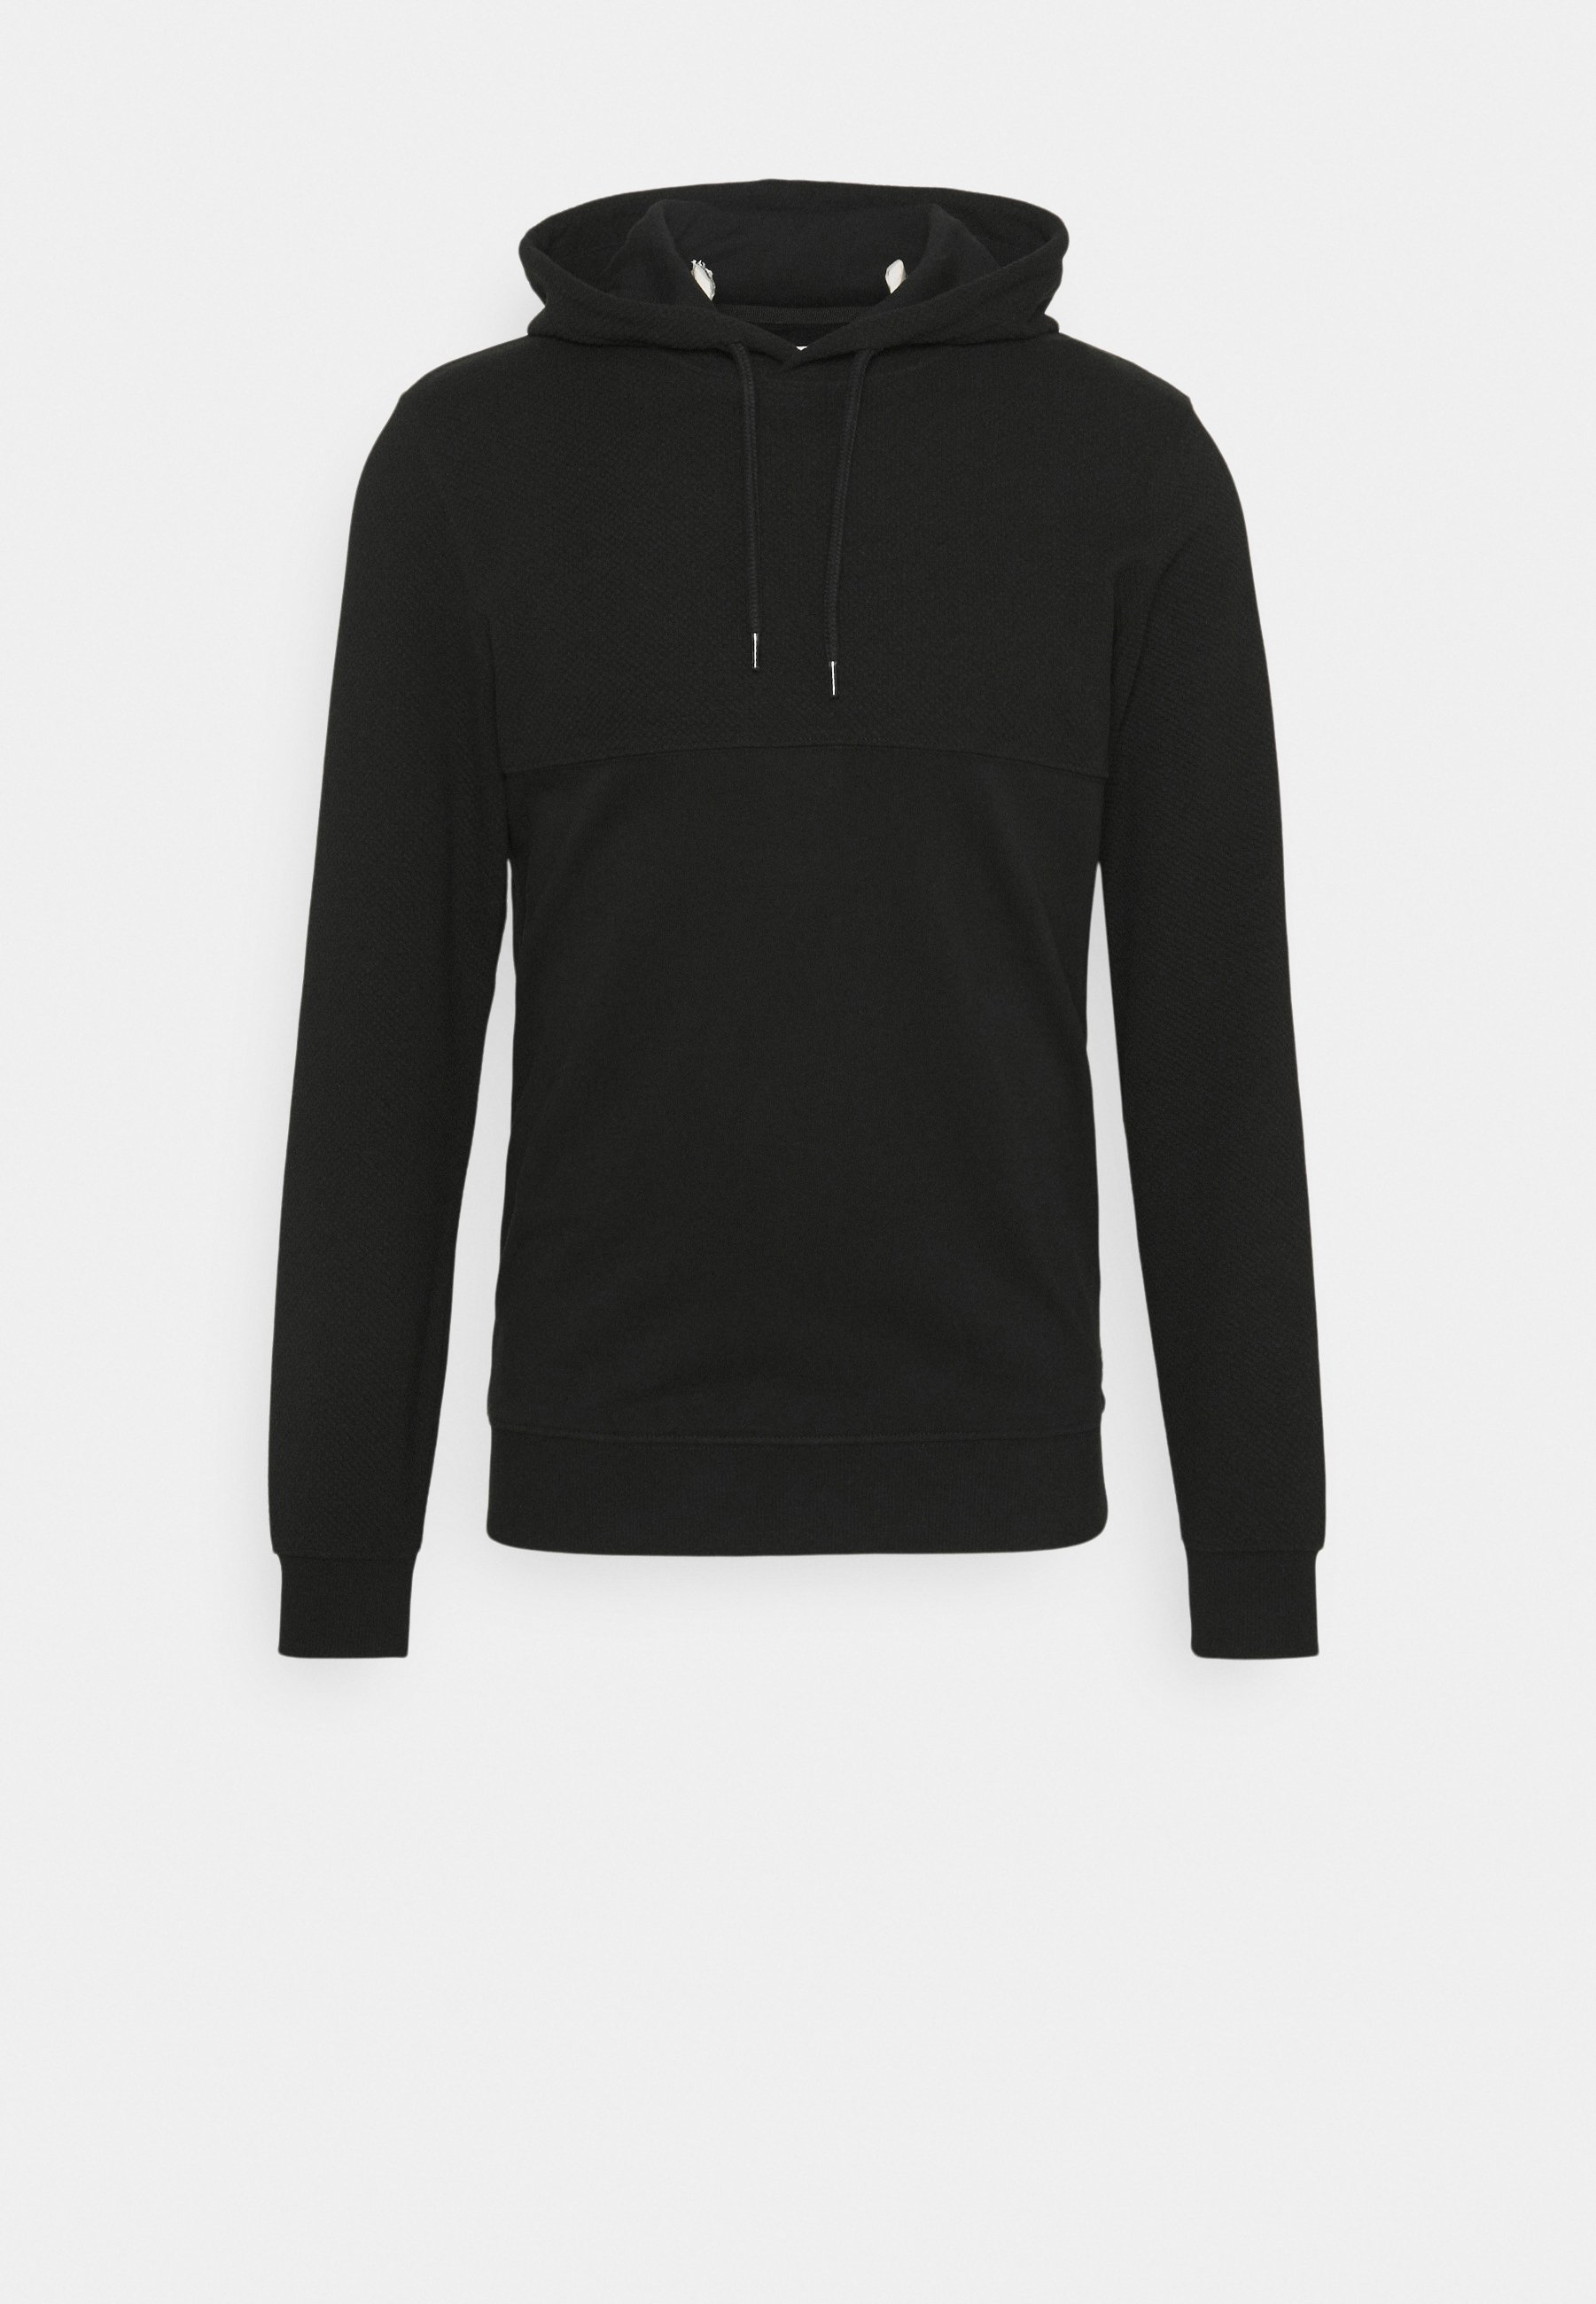 Uomo HOODY WITH STRUCTURE - Felpa